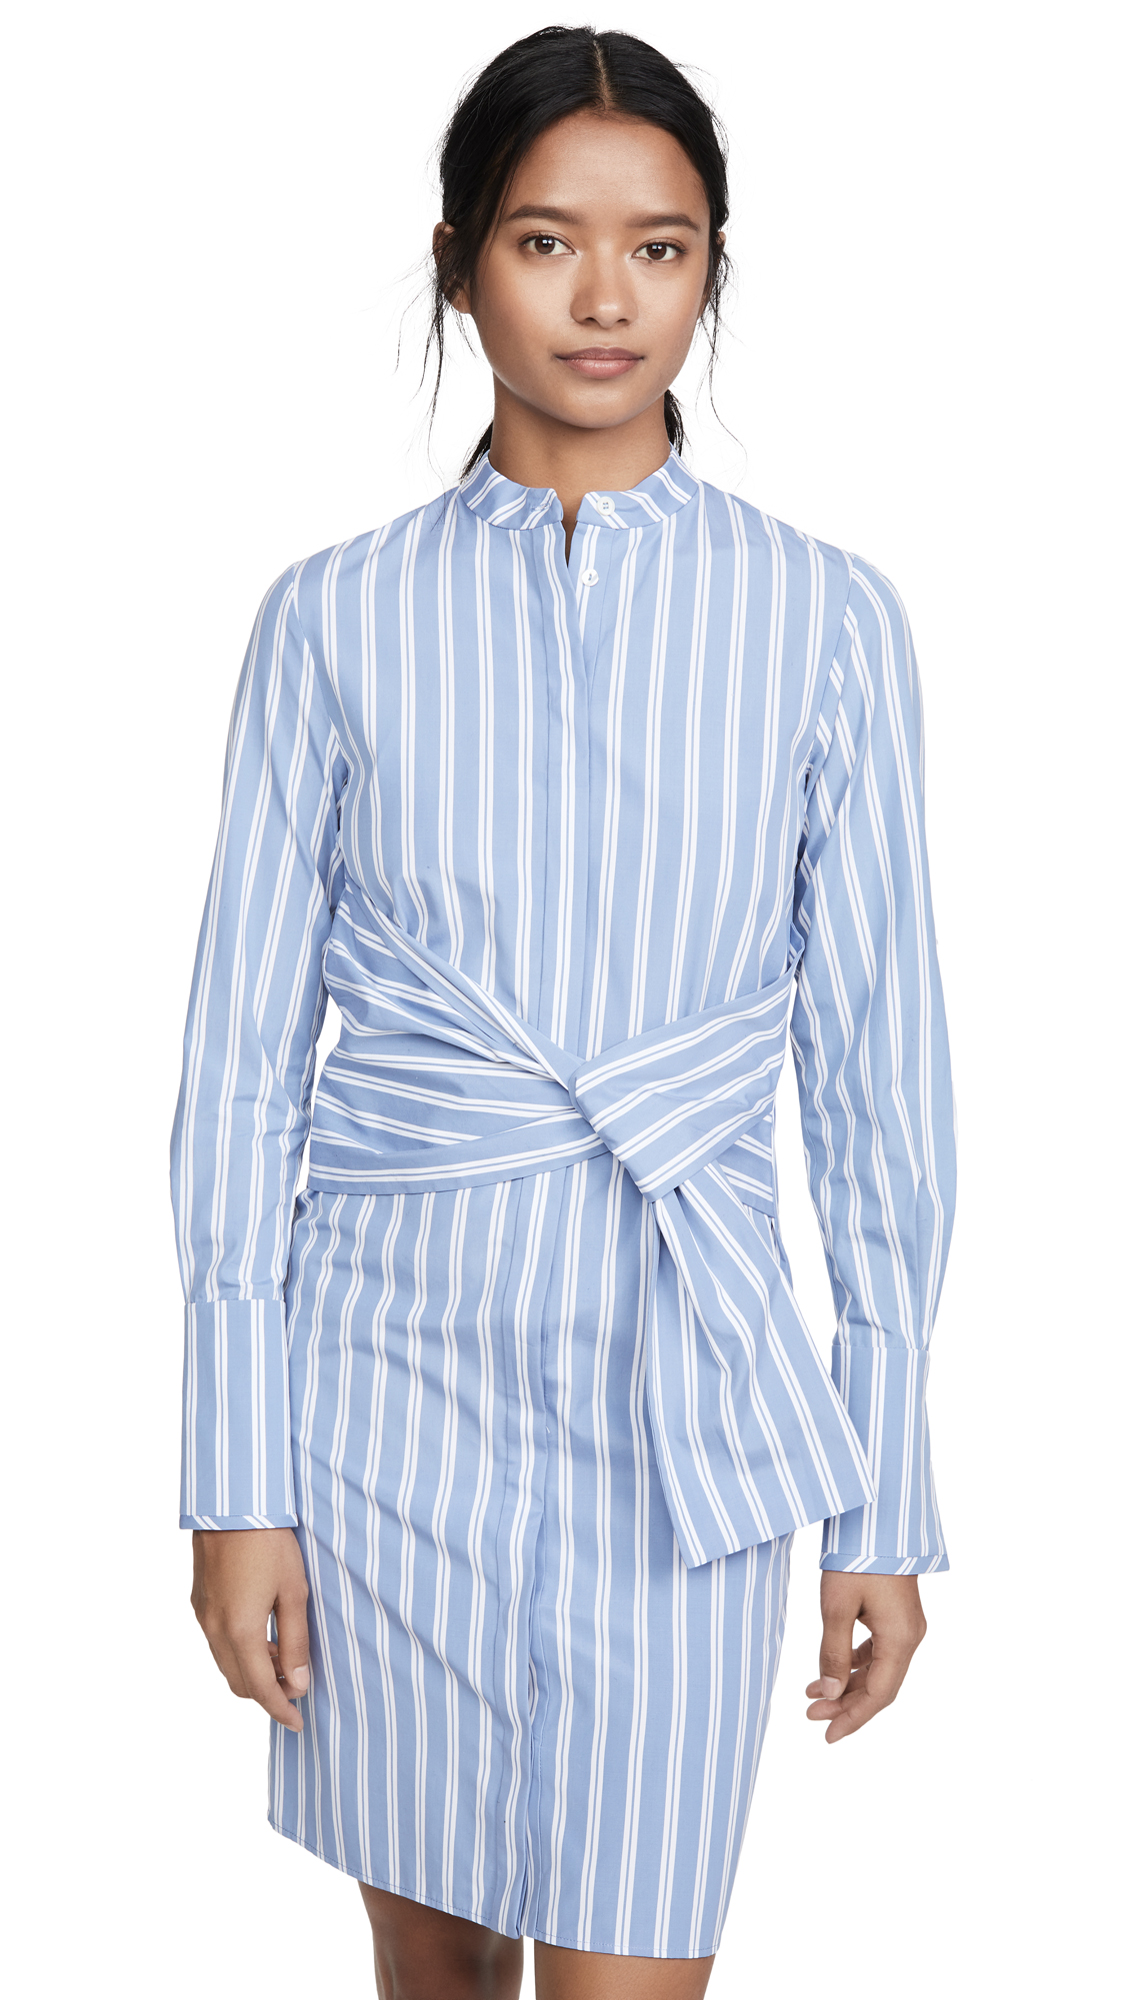 Victoria Victoria Beckham Striped Shirt Dress with Tie - 50% Off Sale